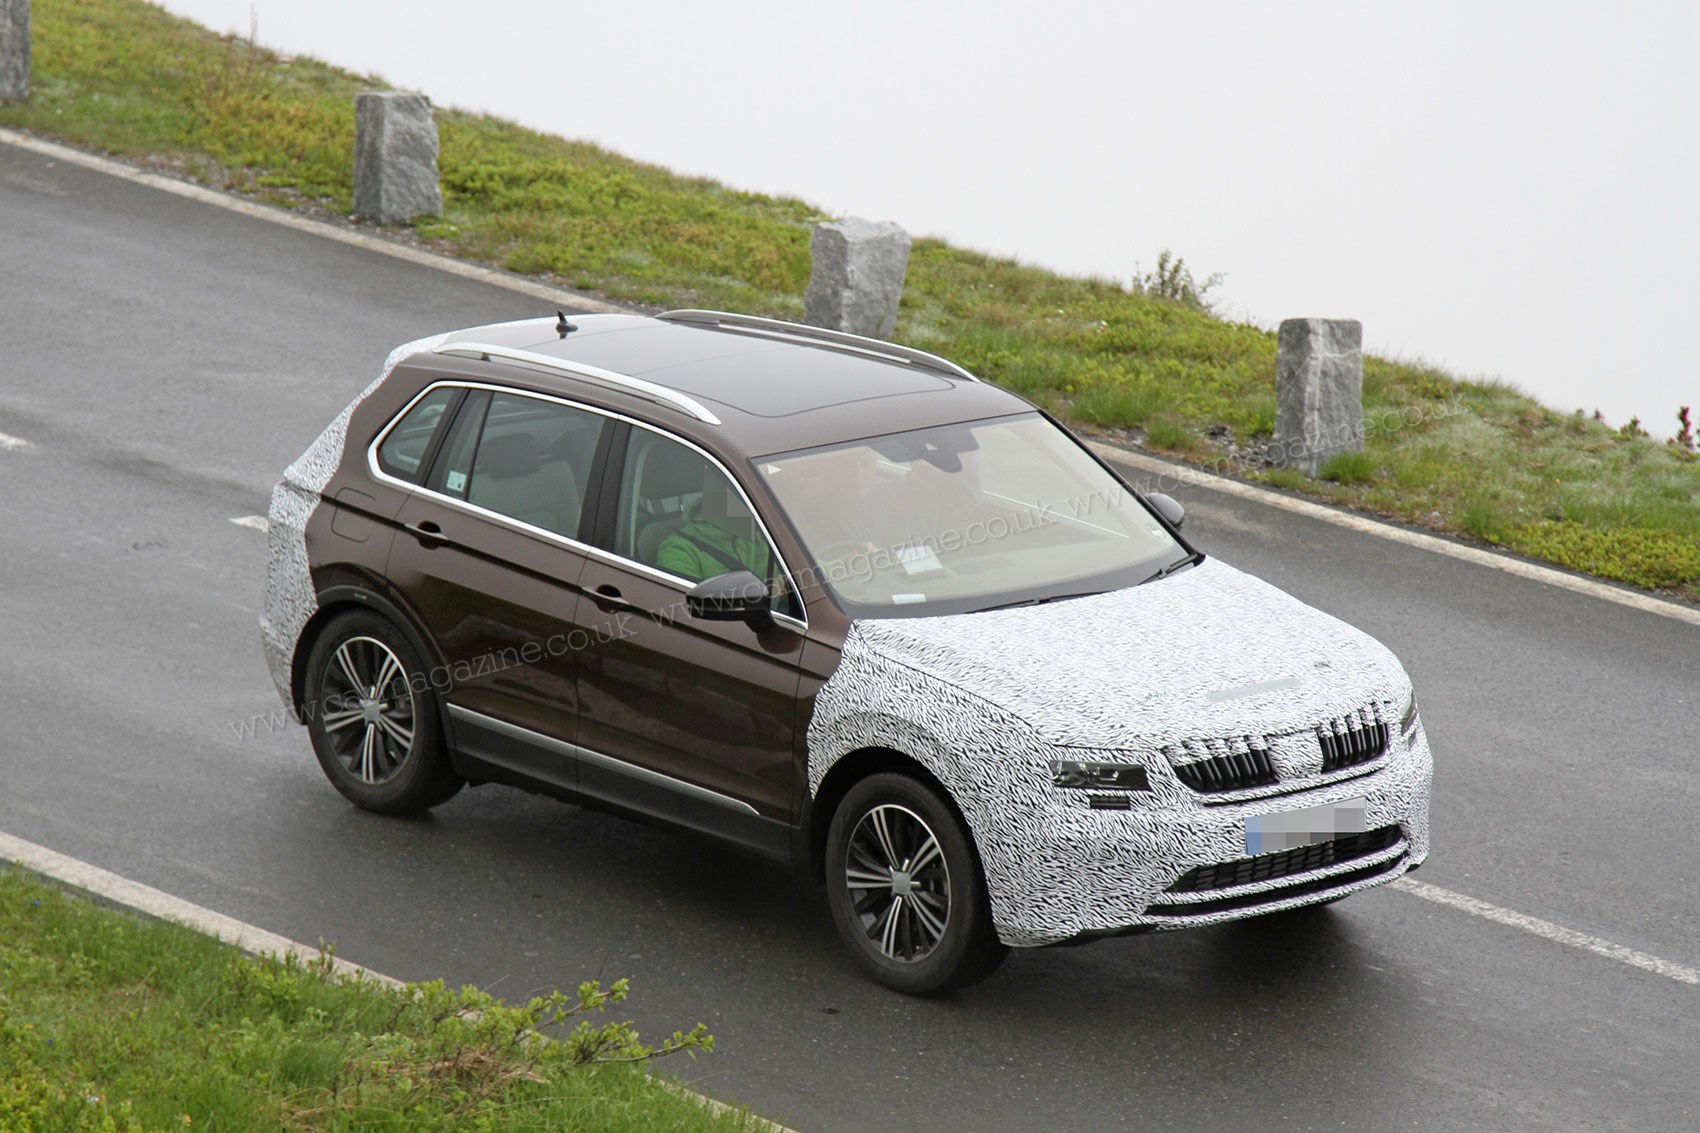 Skoda yeti 2017 review release date new automotive trends skoda -  Bye Bye Character Hello Tiguan It S The New 2017 Skoda Yeti